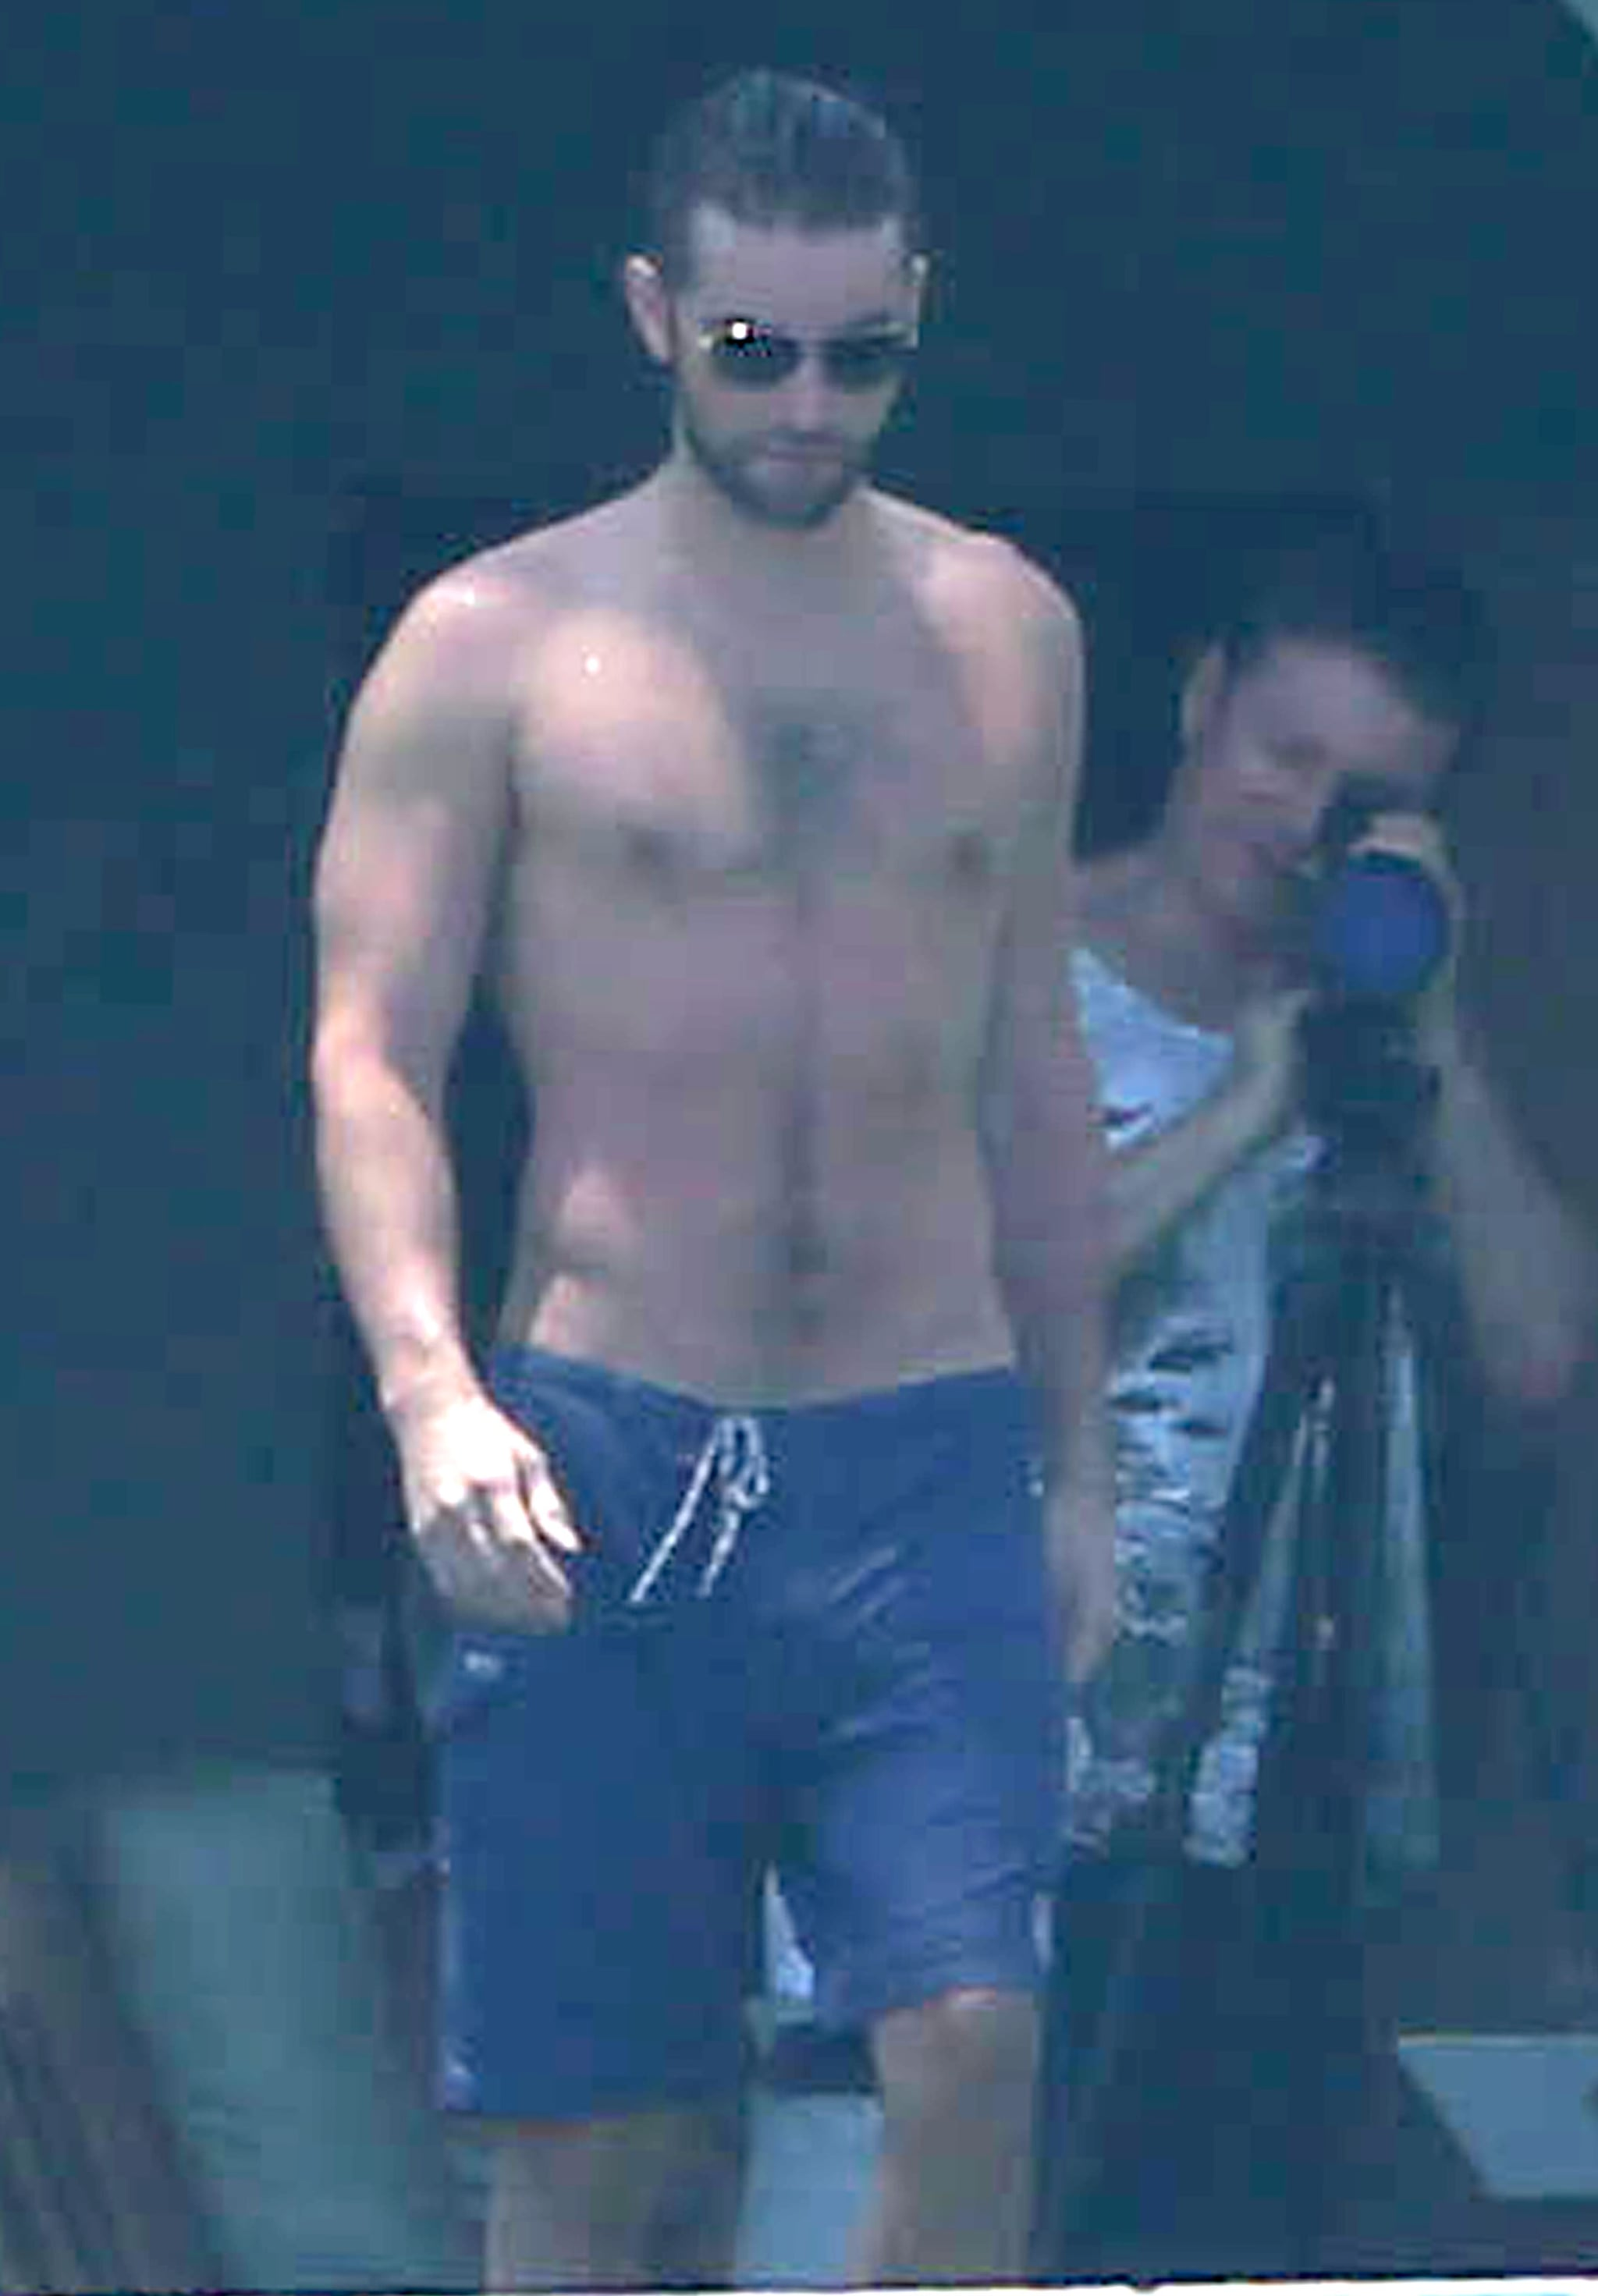 Chace Crawford lost his shirt while vacationing in Cabo in May.